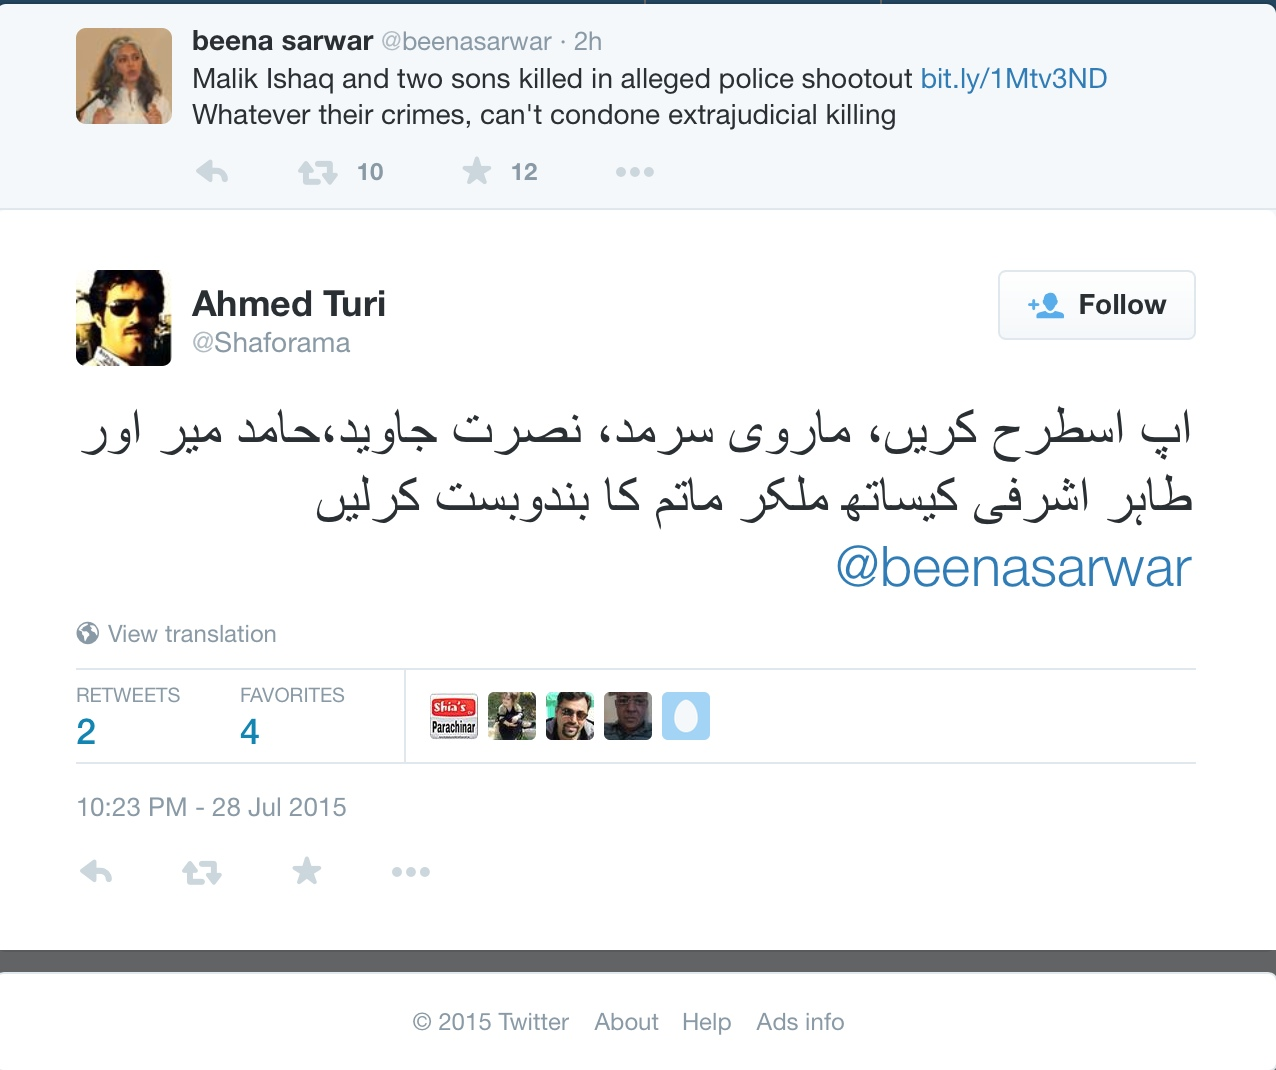 Beena Sarwar creating sympathy for Malik Ishaq gets a stinging response from Ahmed Turi